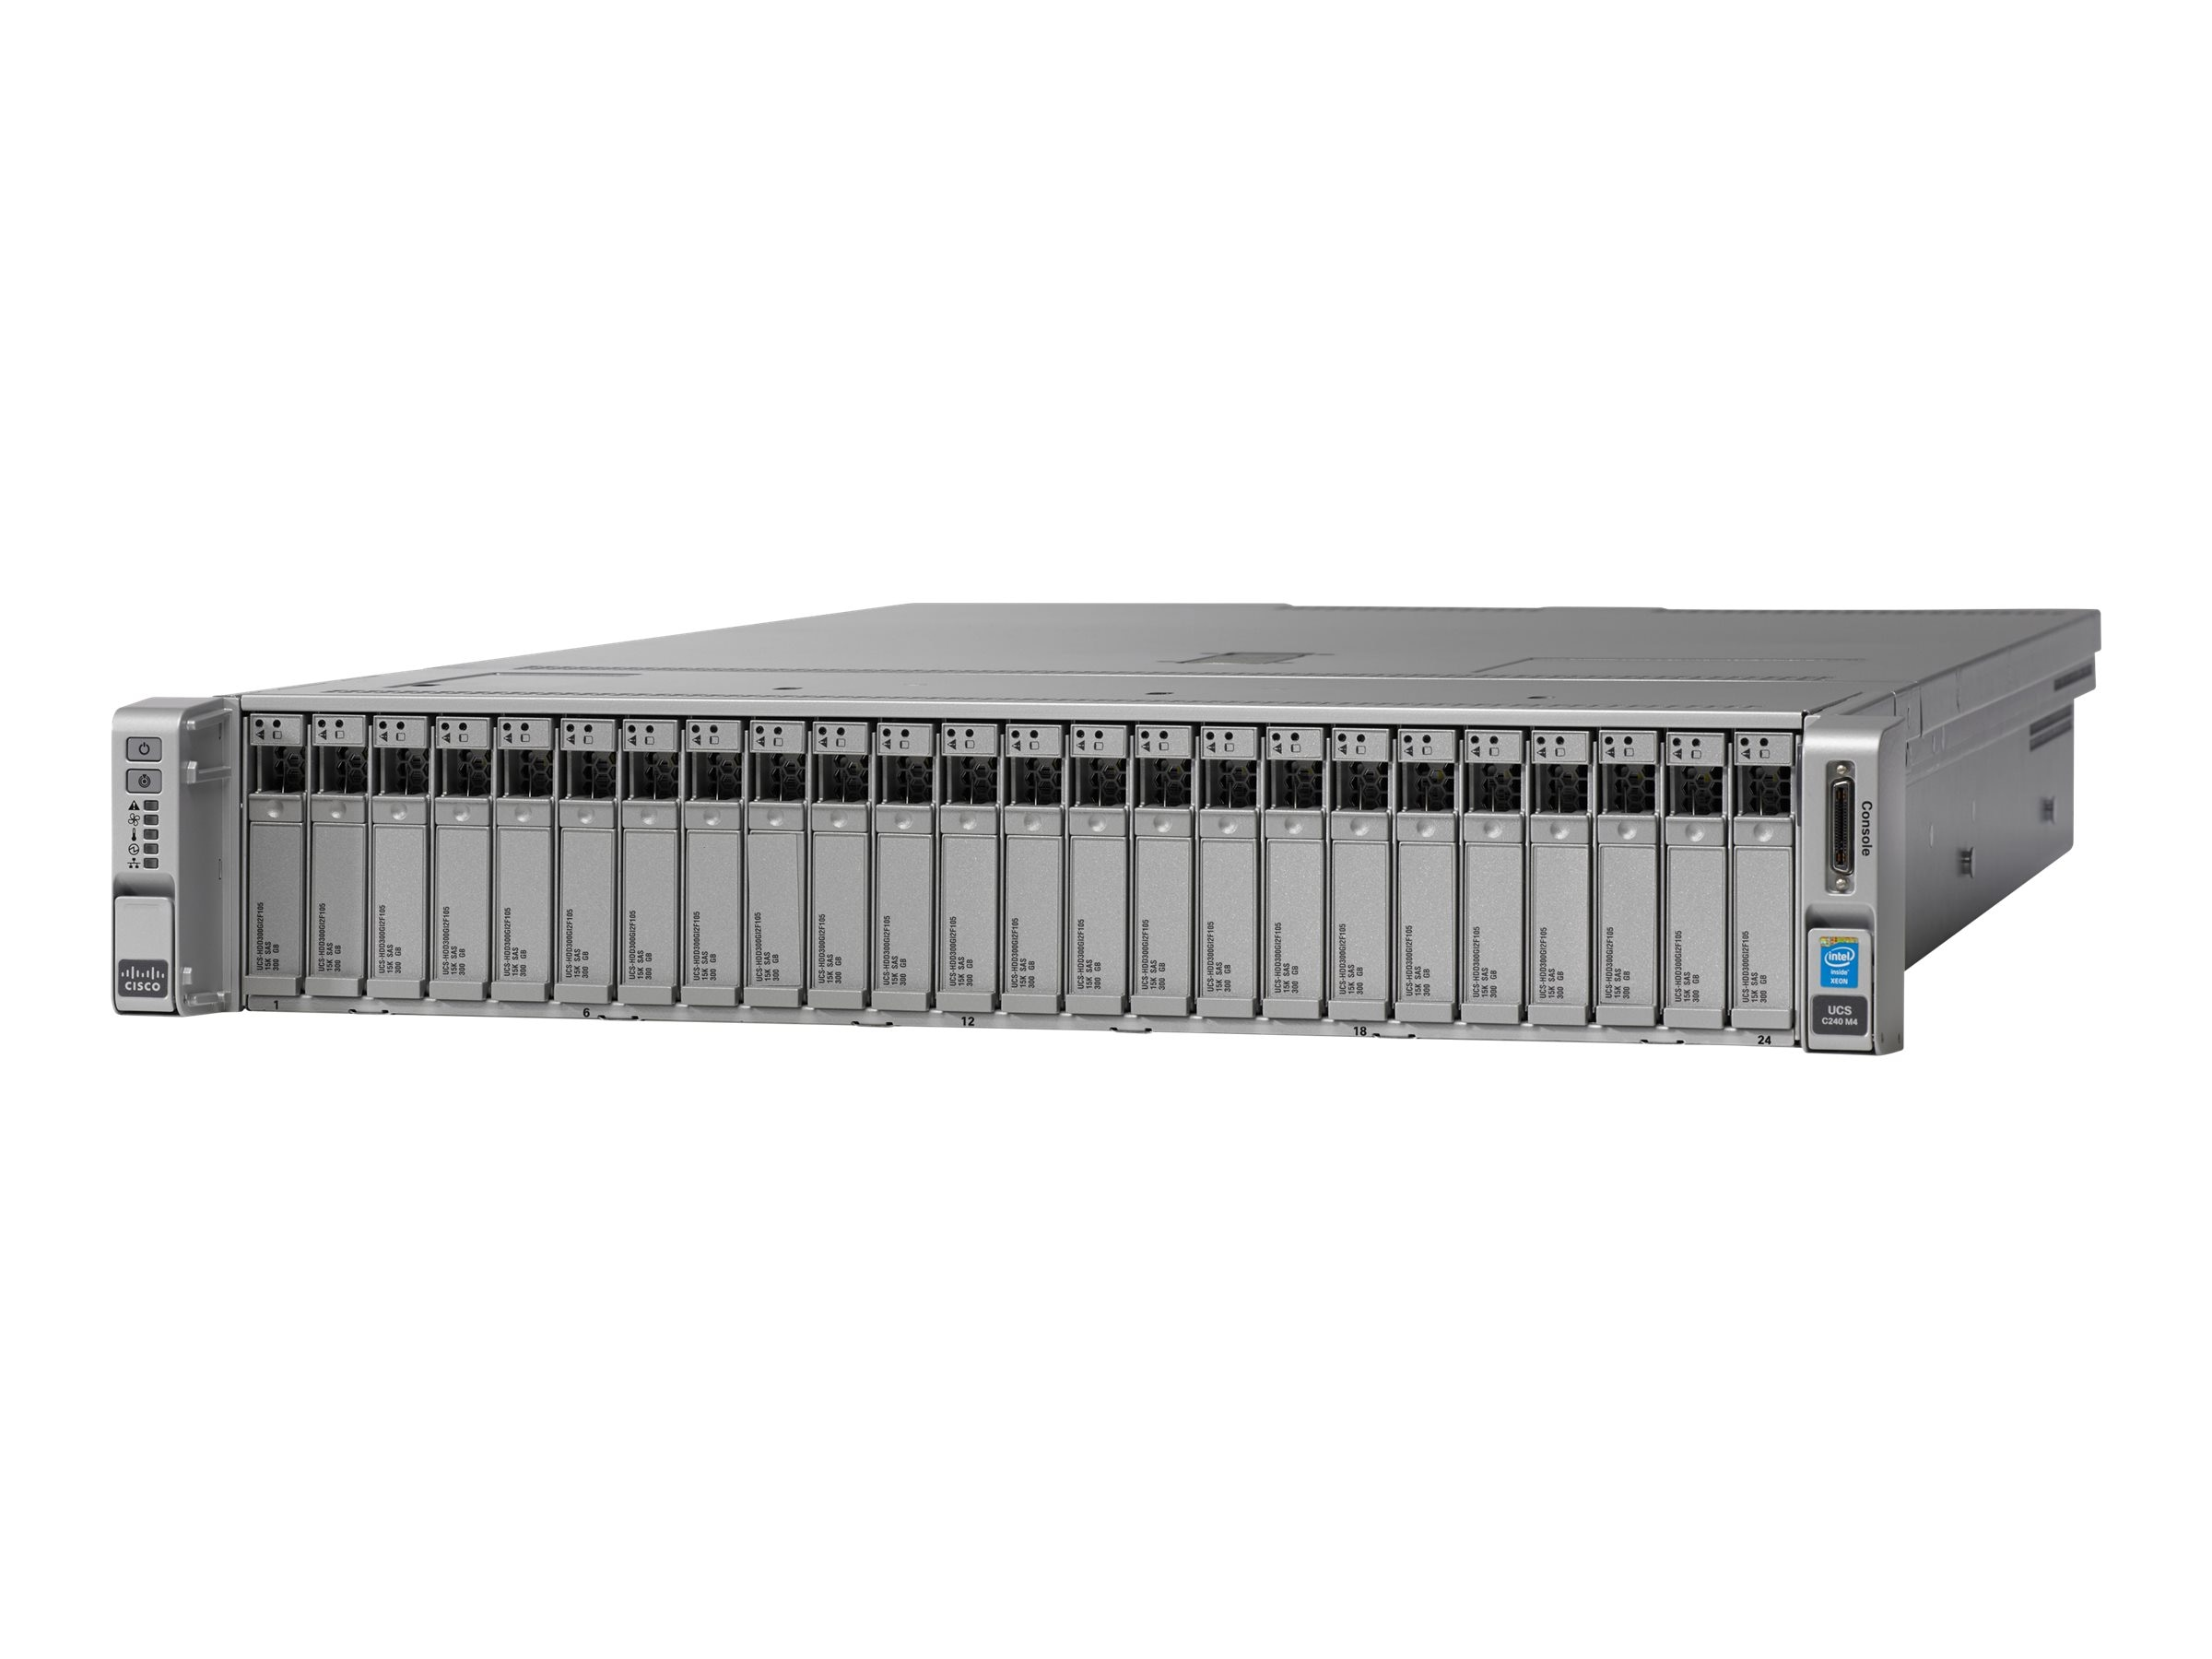 Cisco UCS-SP-C240M4-B-F1 Image 2